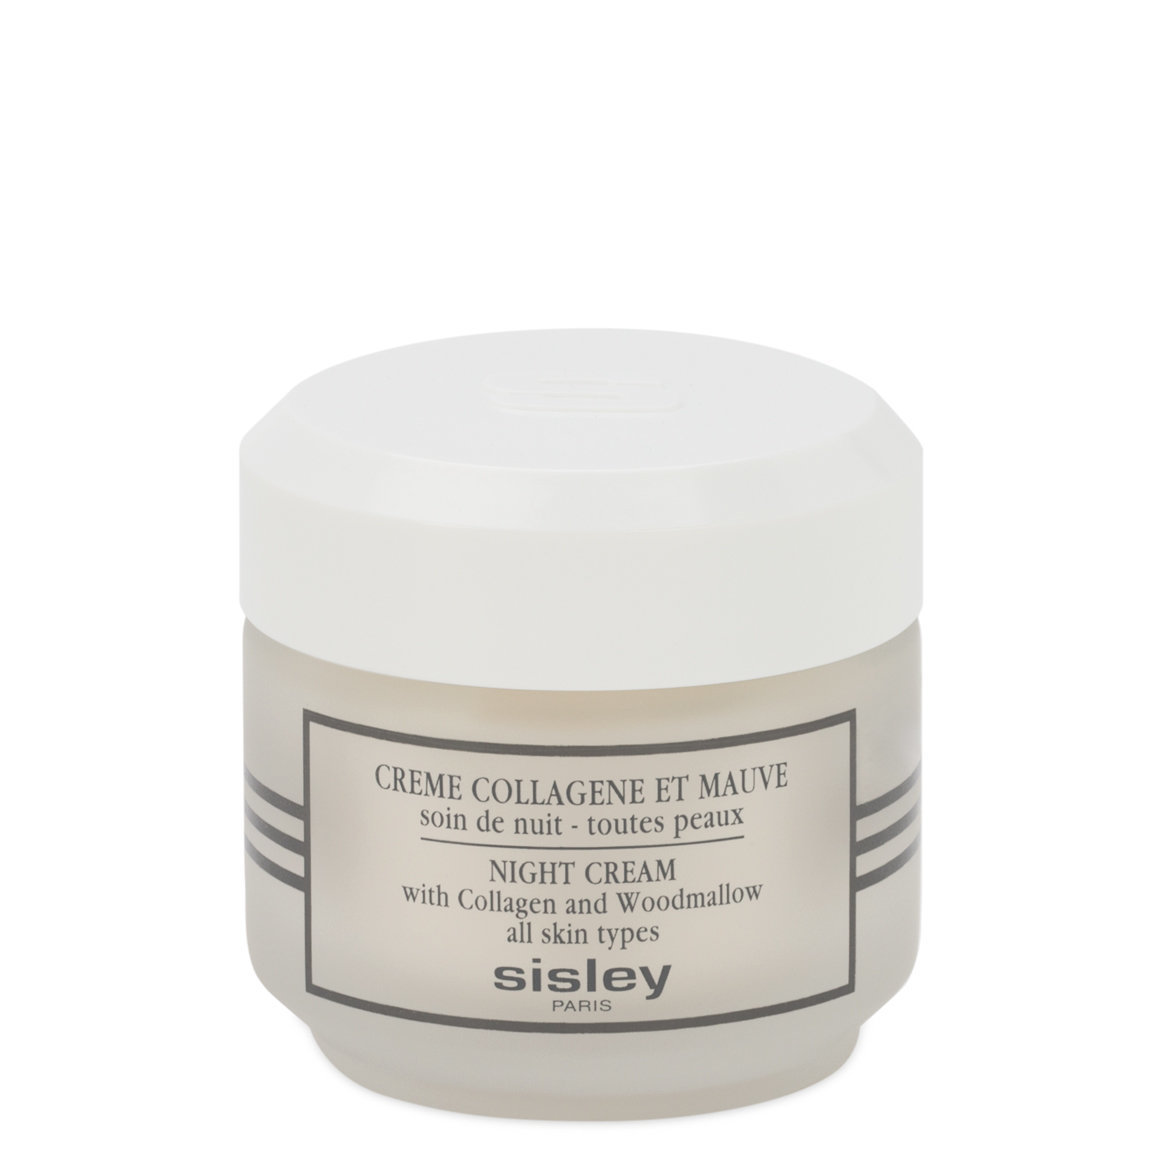 Sisley-Paris Night Cream with Collagen and Woodmallow alternative view 1 - product swatch.